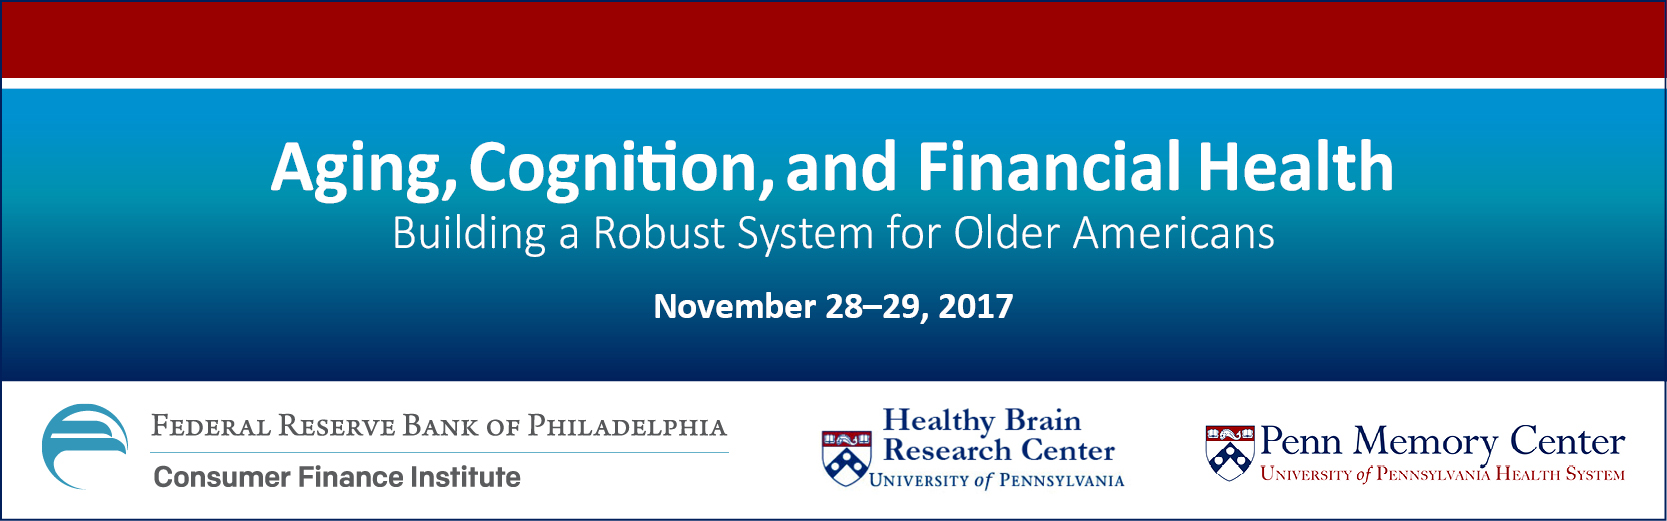 Aging, Cognition, and Financial Health